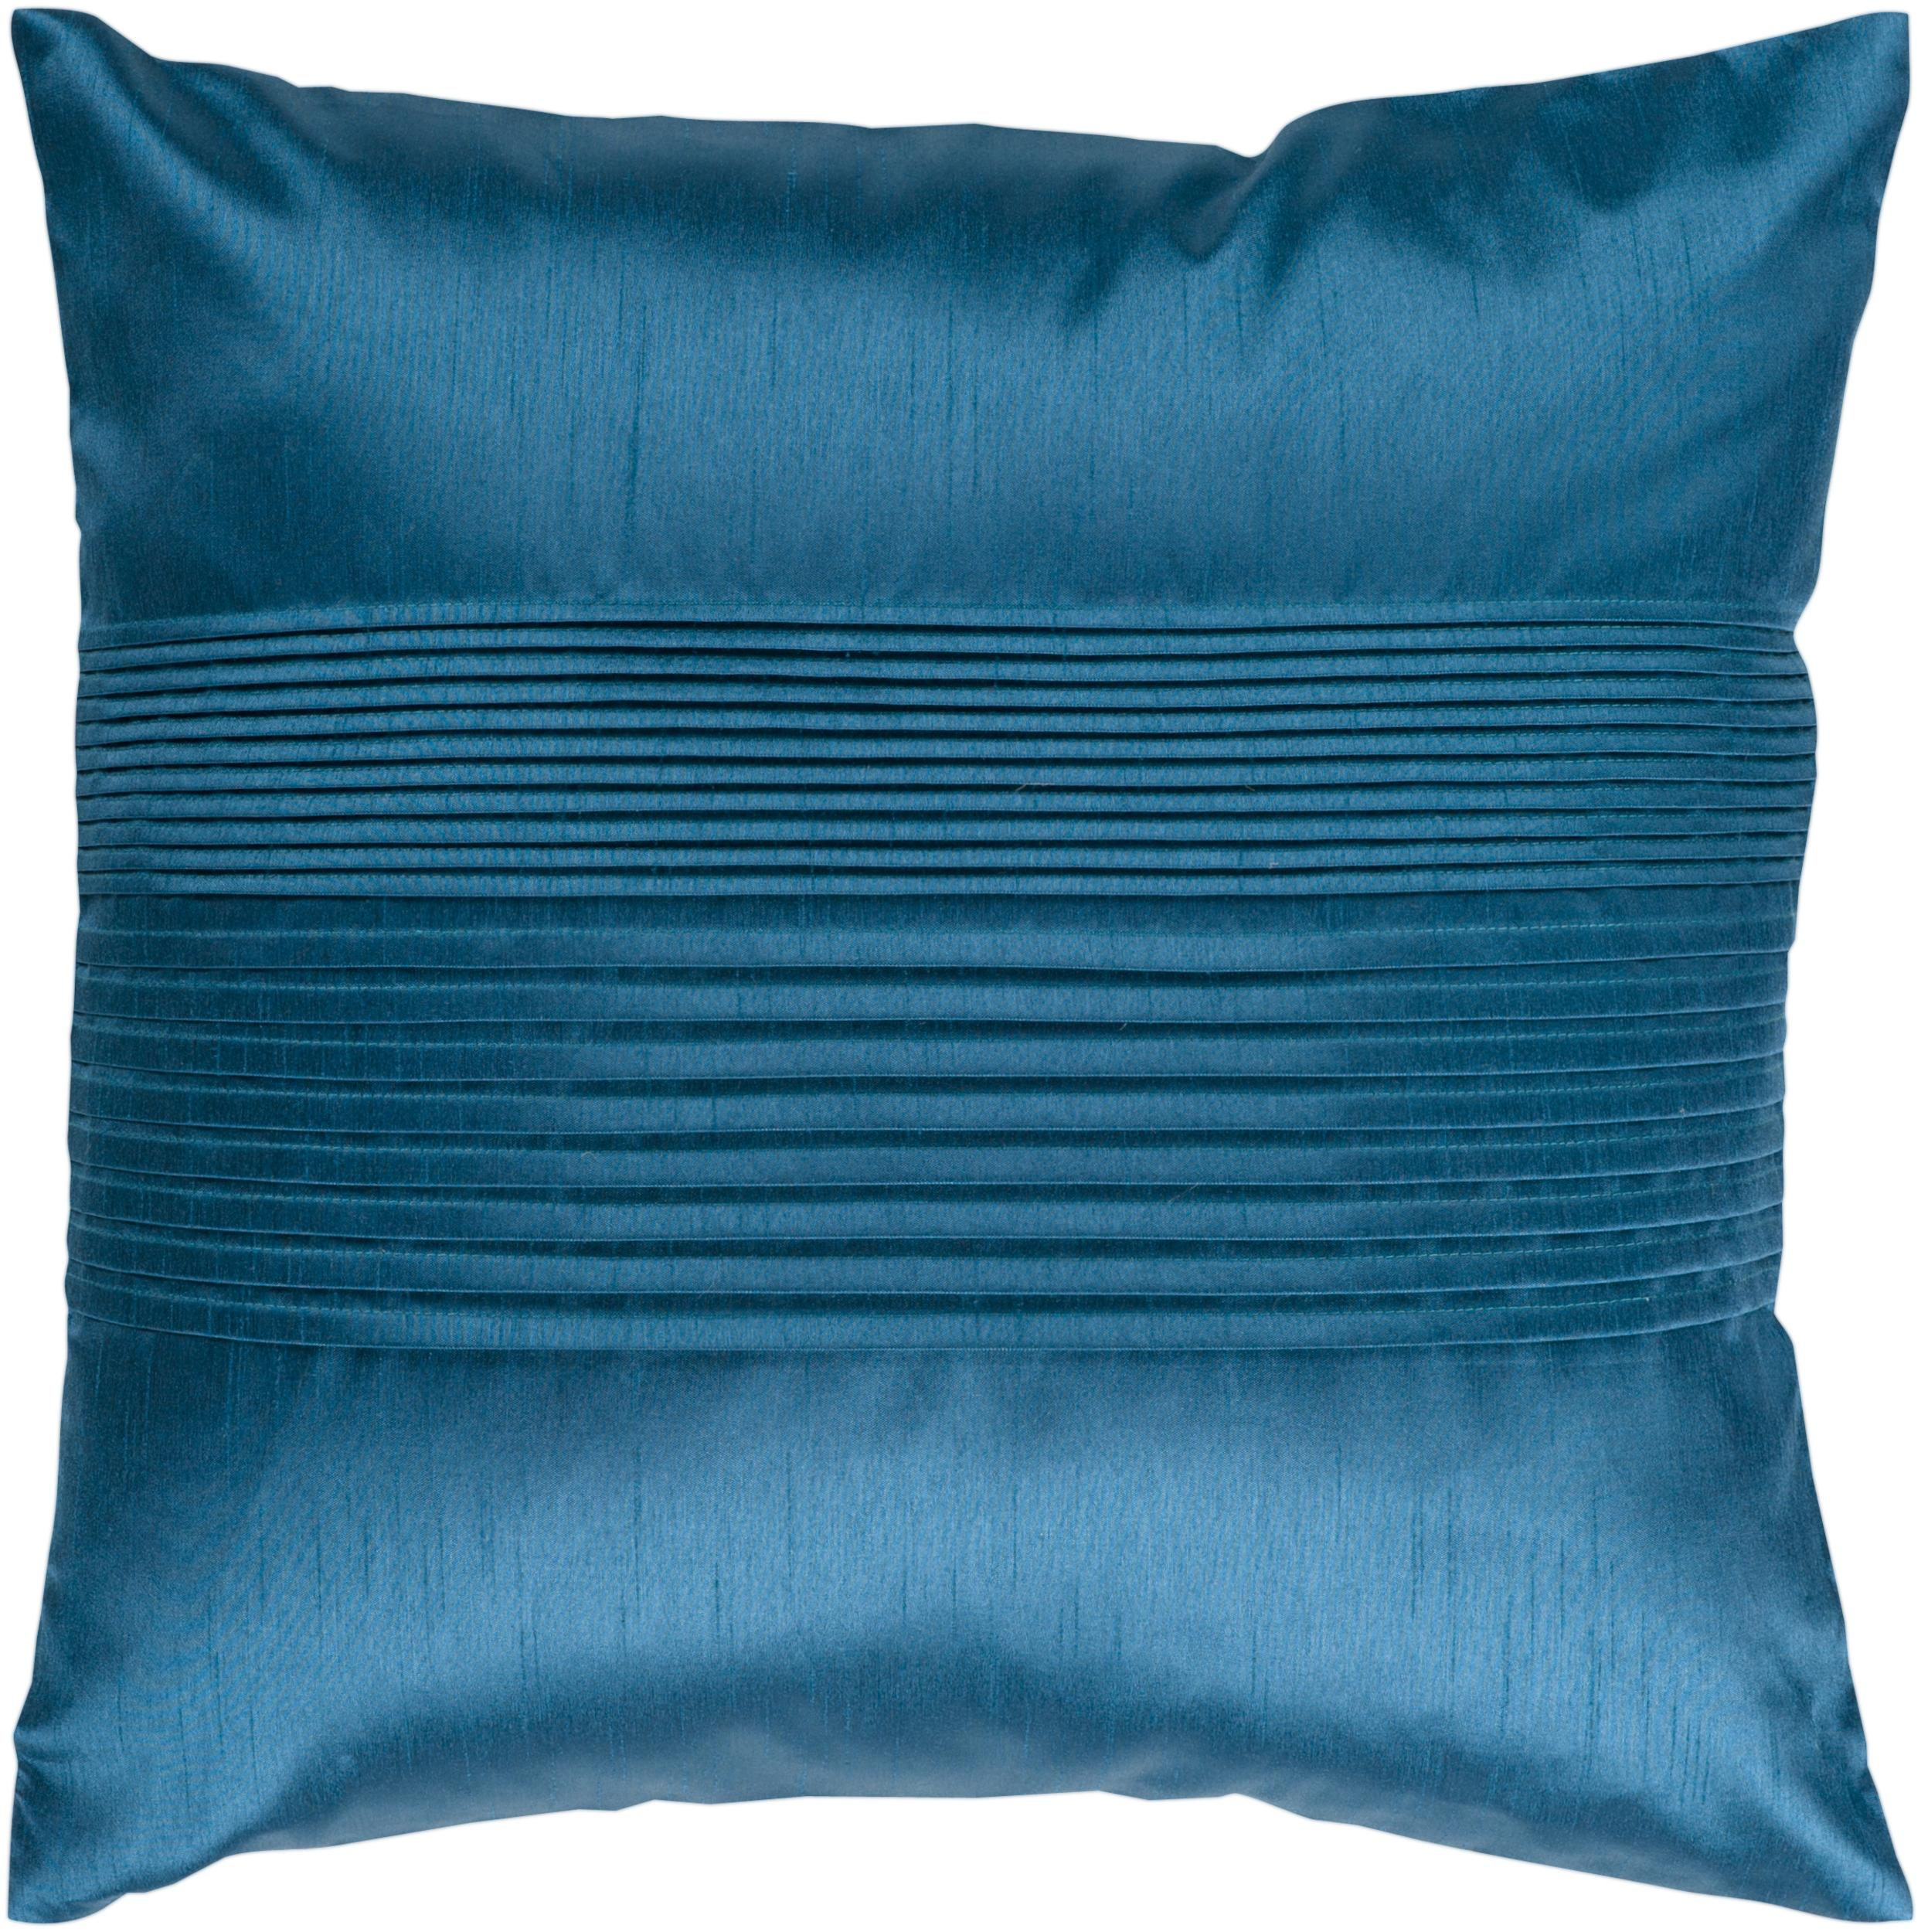 "Surya Pillows 22"" x 22"" Pillow - Item Number: HH024-2222P"